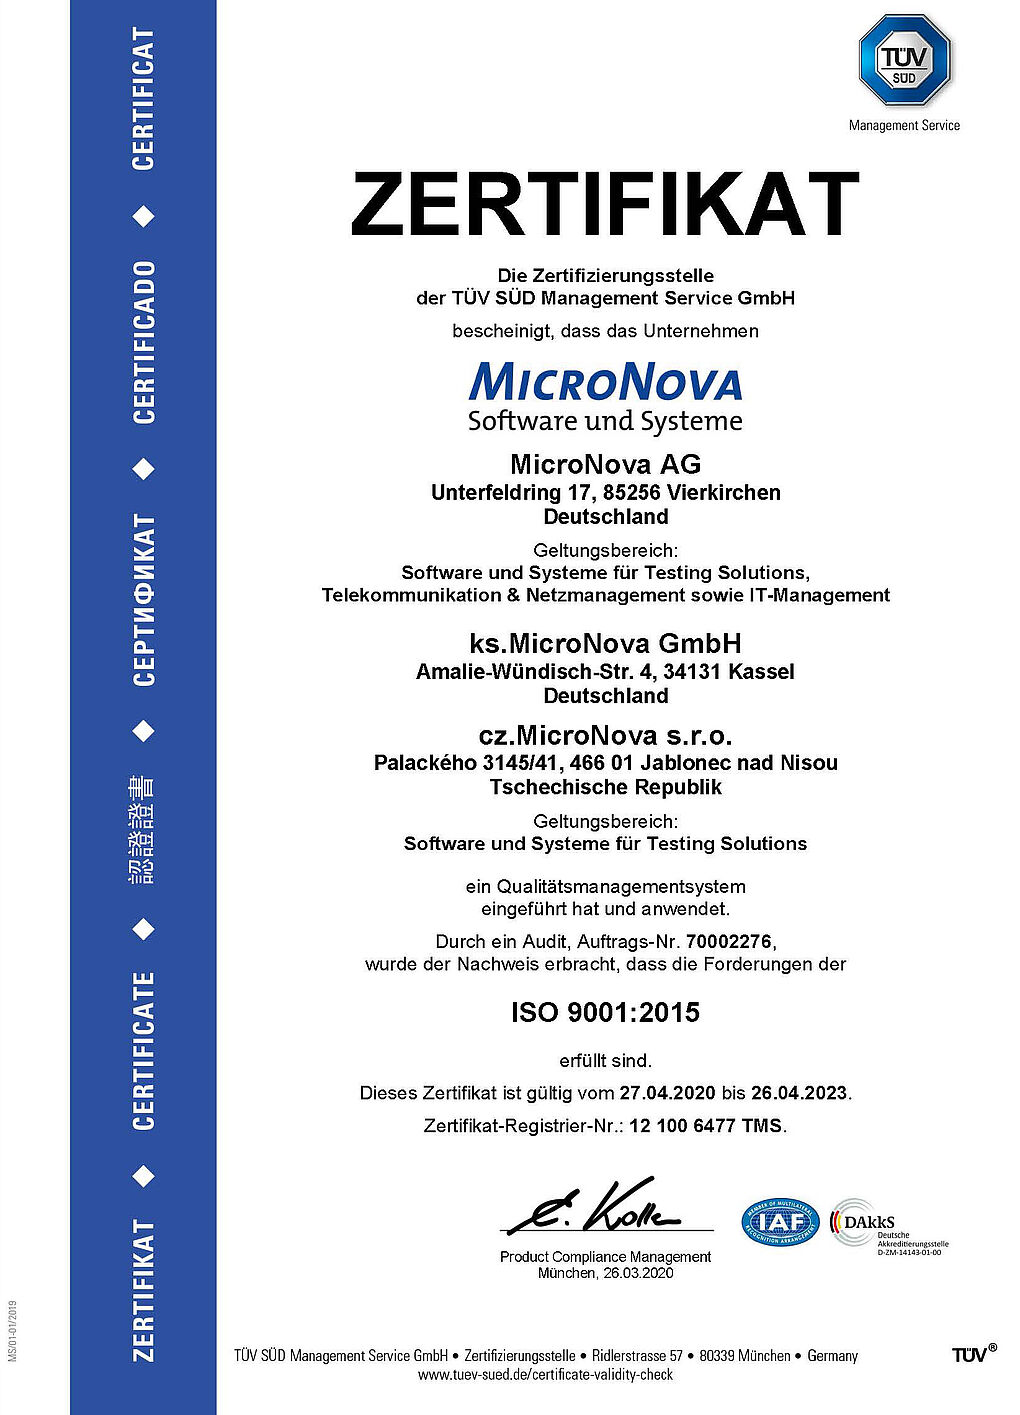 Joint Certitificate: ISO 9001:2015